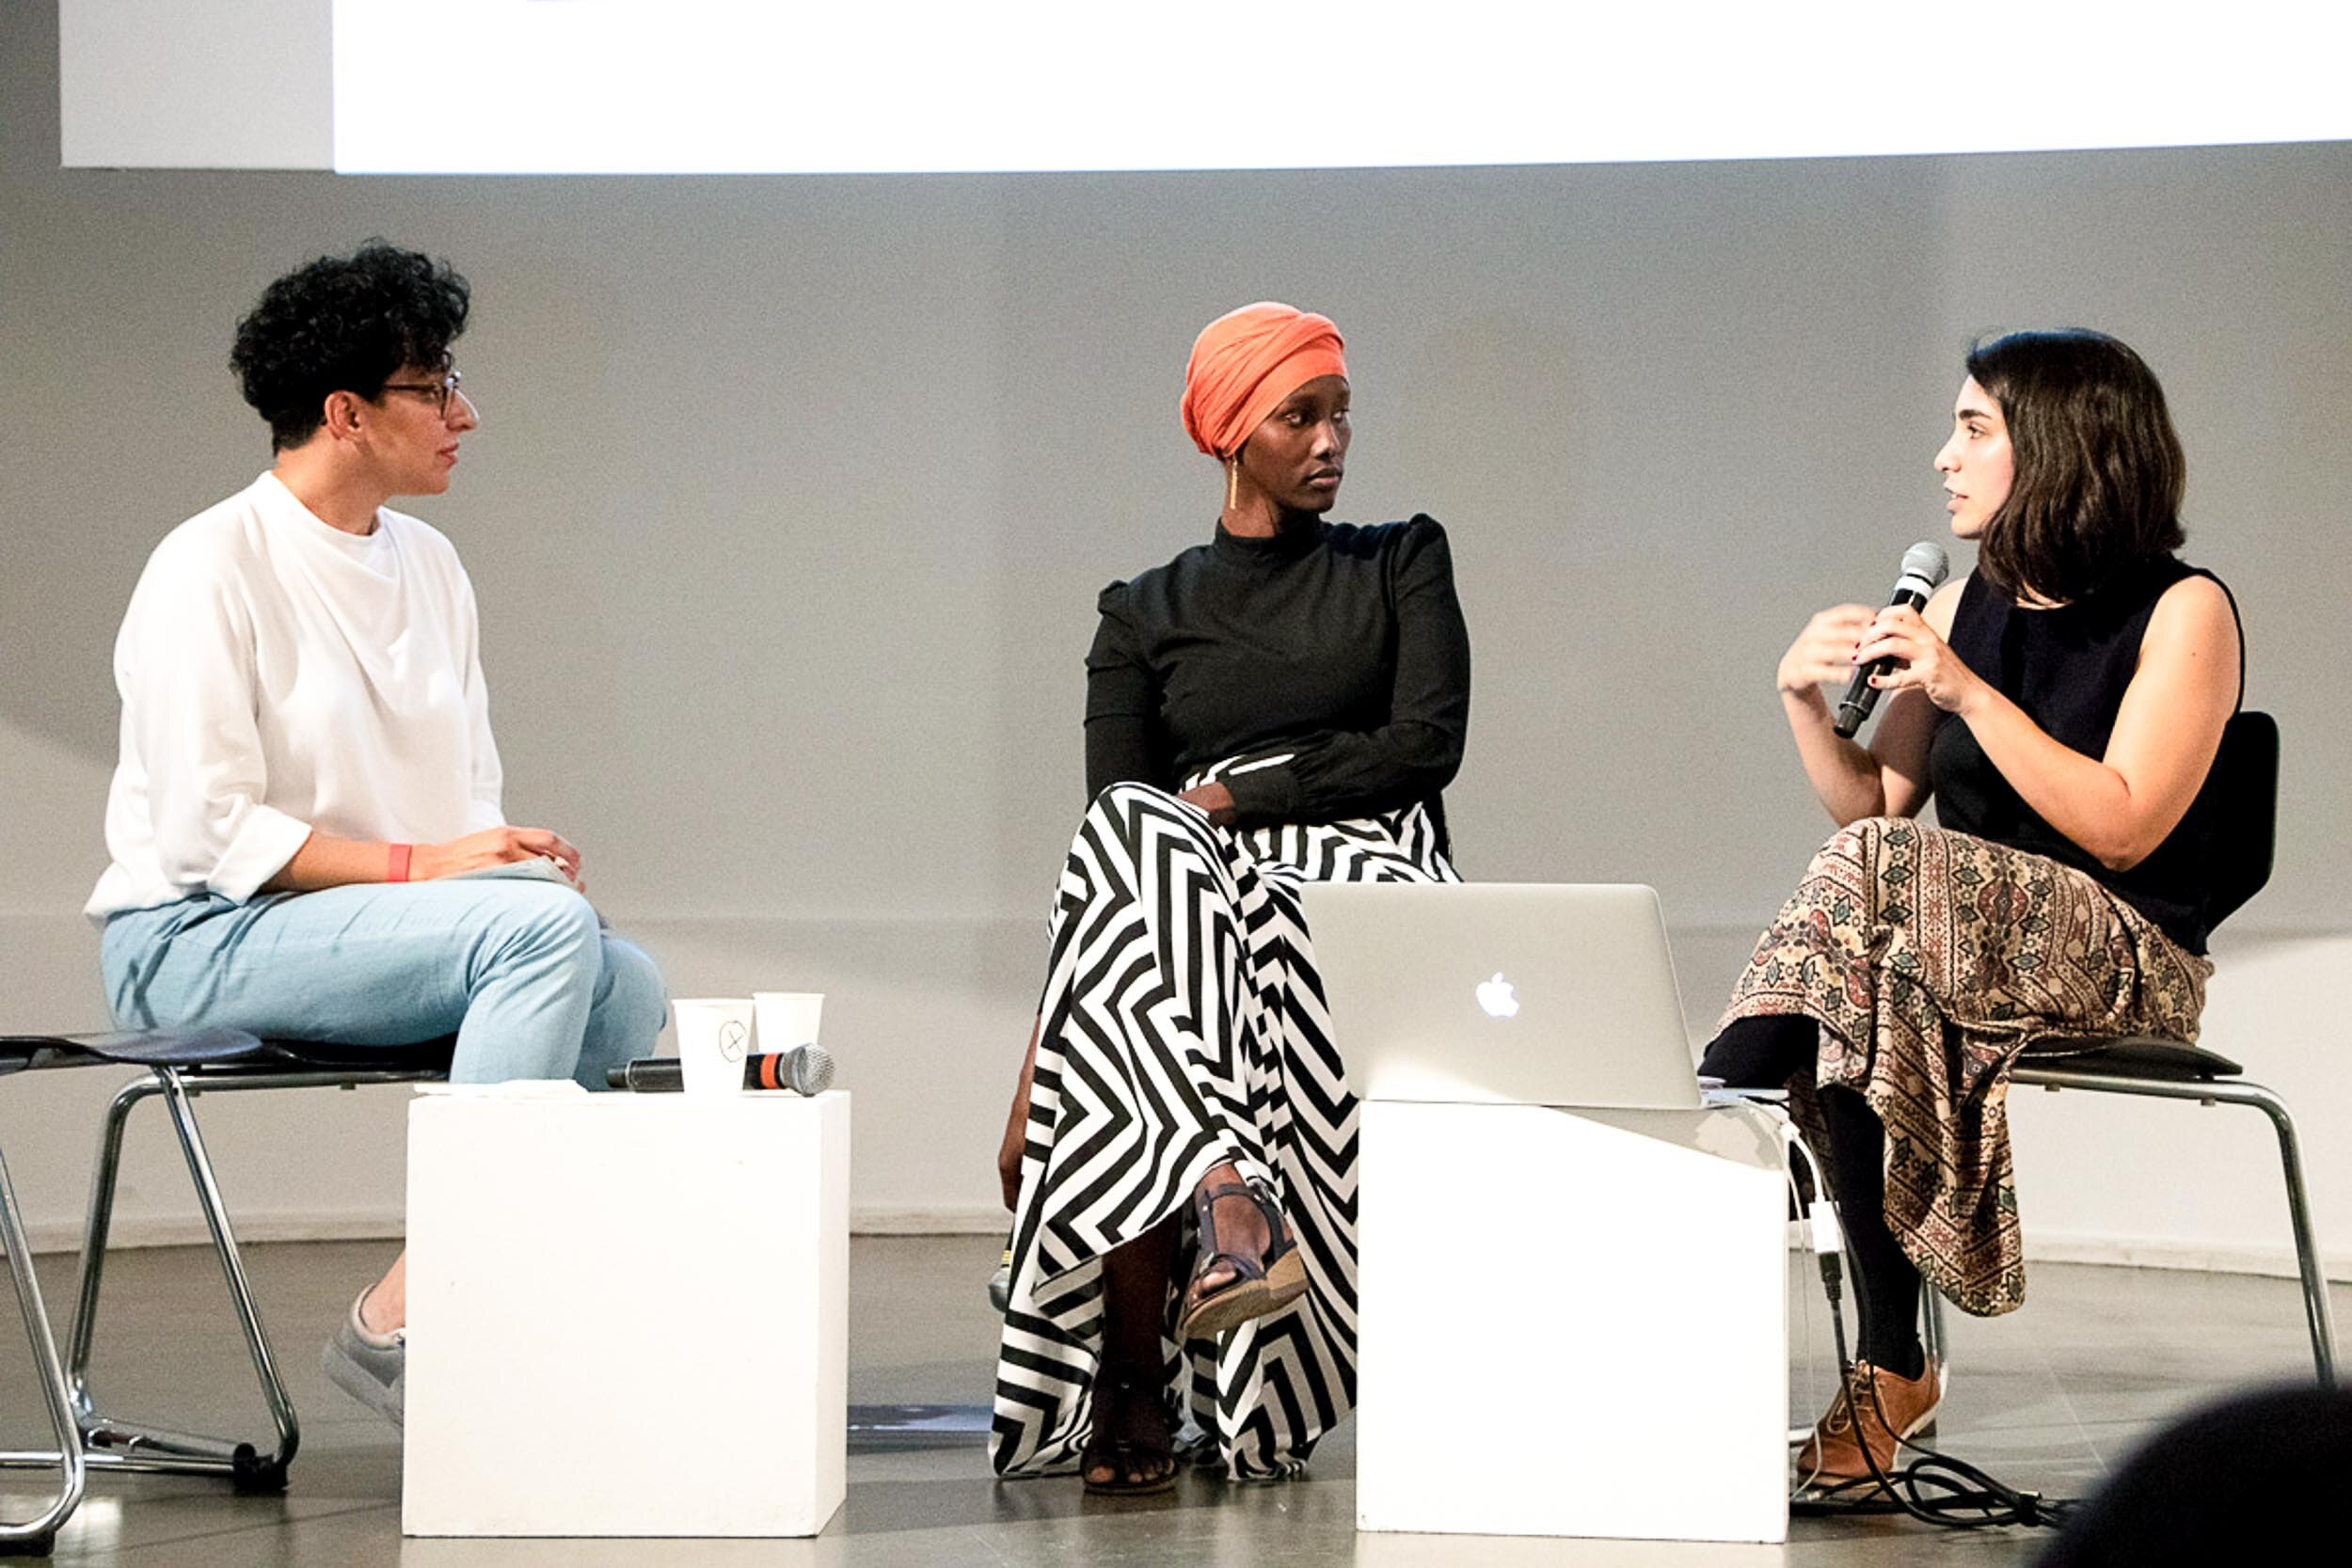 Forum Commoning Berlin. Conversation between Niloufar Tajeri (coop.disco), Fatuma Musa Afrah and Asli Varol (Campus Cosmopolis). Photo: Simone Gilges, © ifa